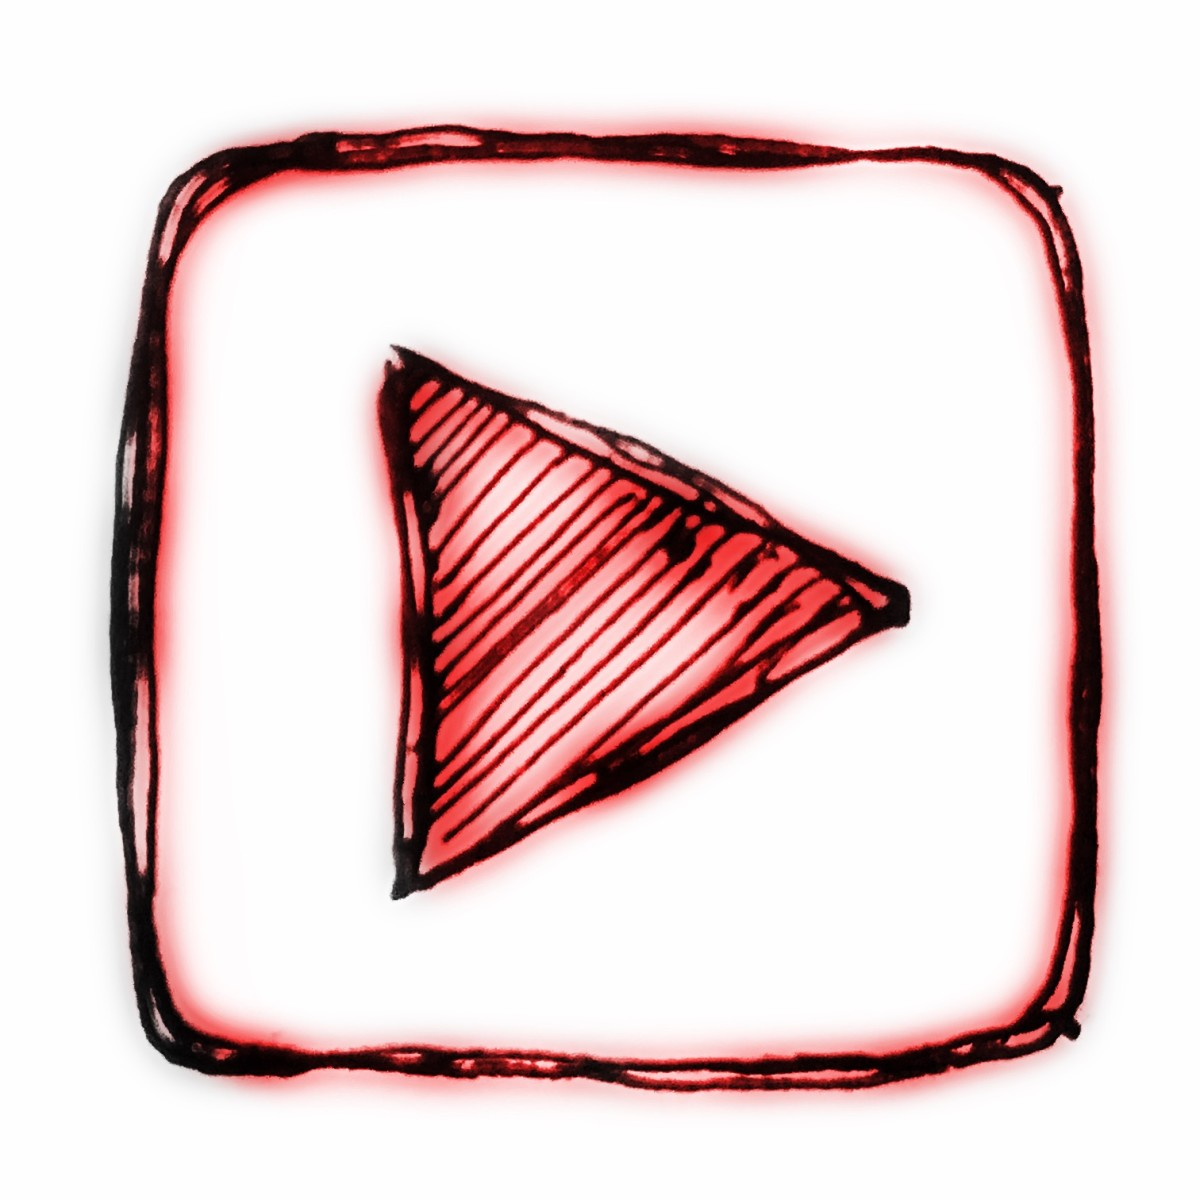 6 Reasons Why YouTube Won't Monetize Your Channel